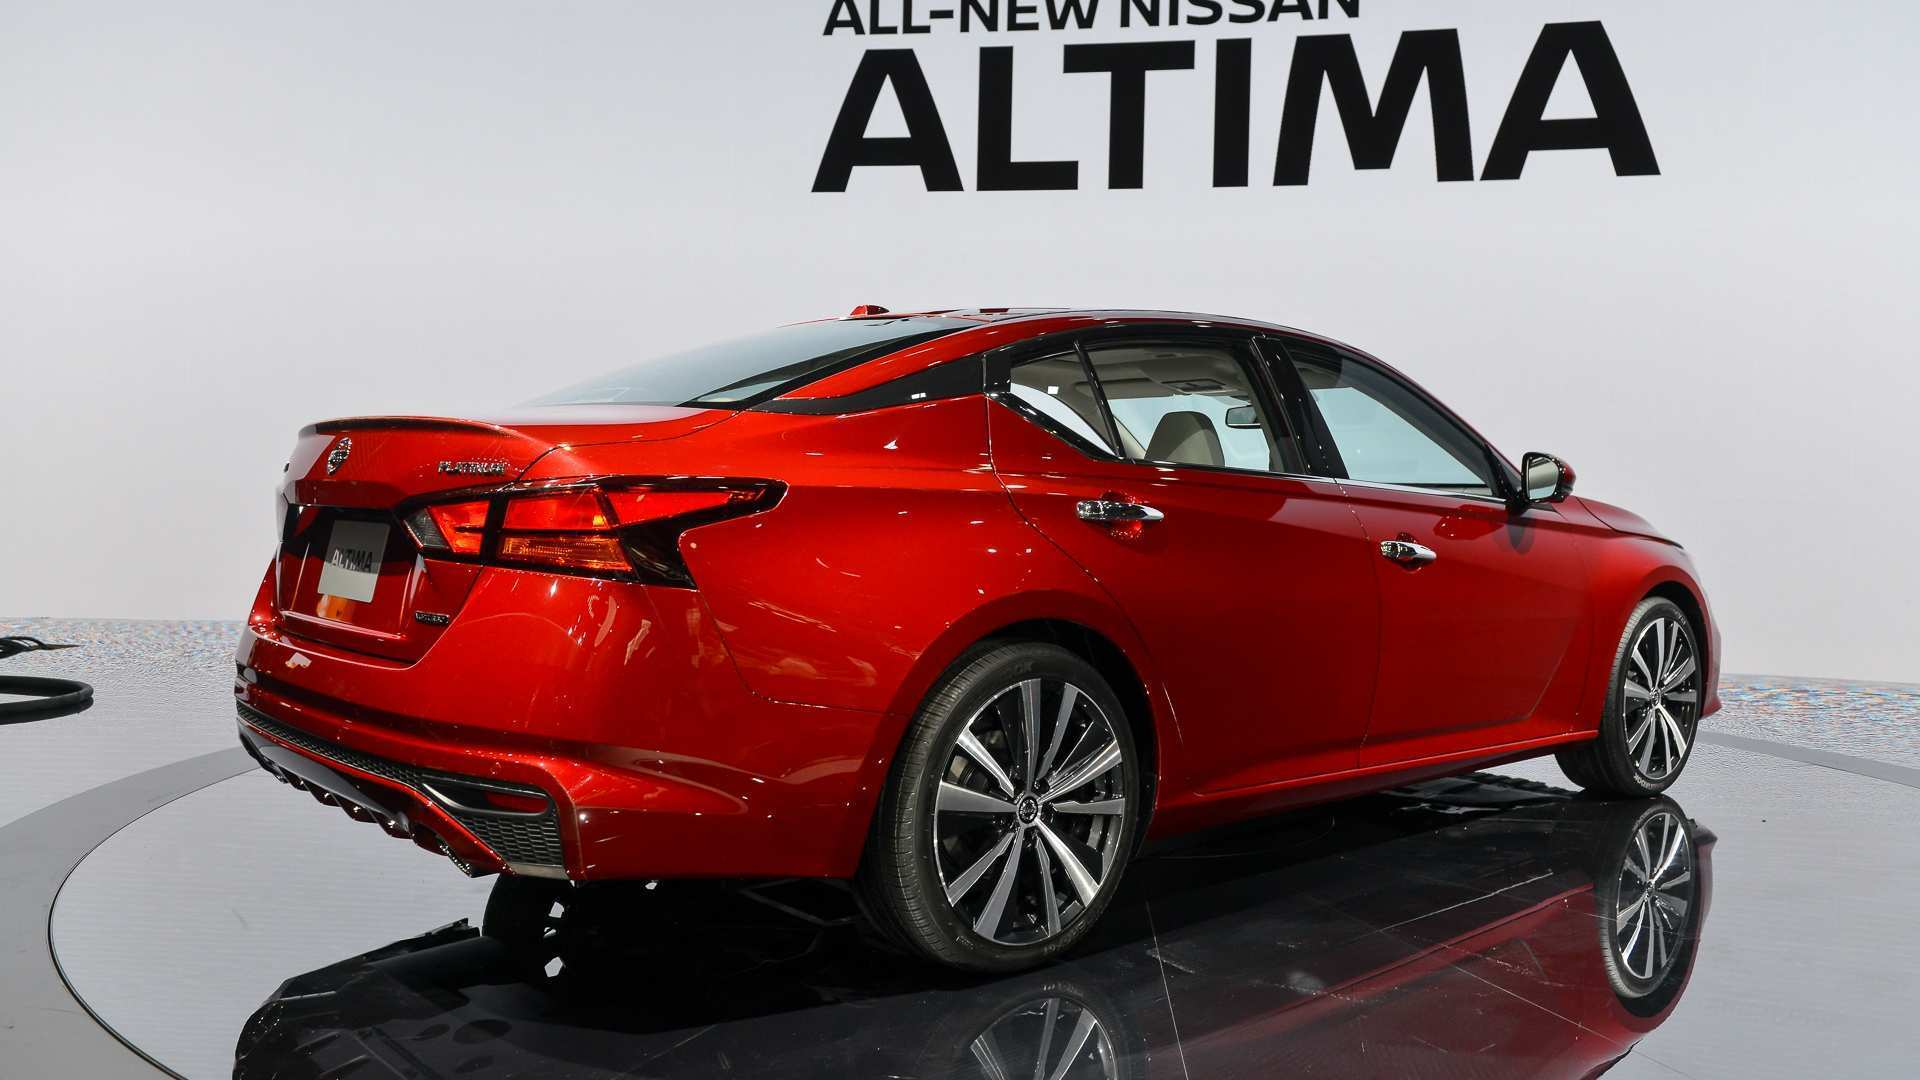 20 New 2019 Nissan Altima Platinum Vc Turbo Exterior and Interior by 2019 Nissan Altima Platinum Vc Turbo